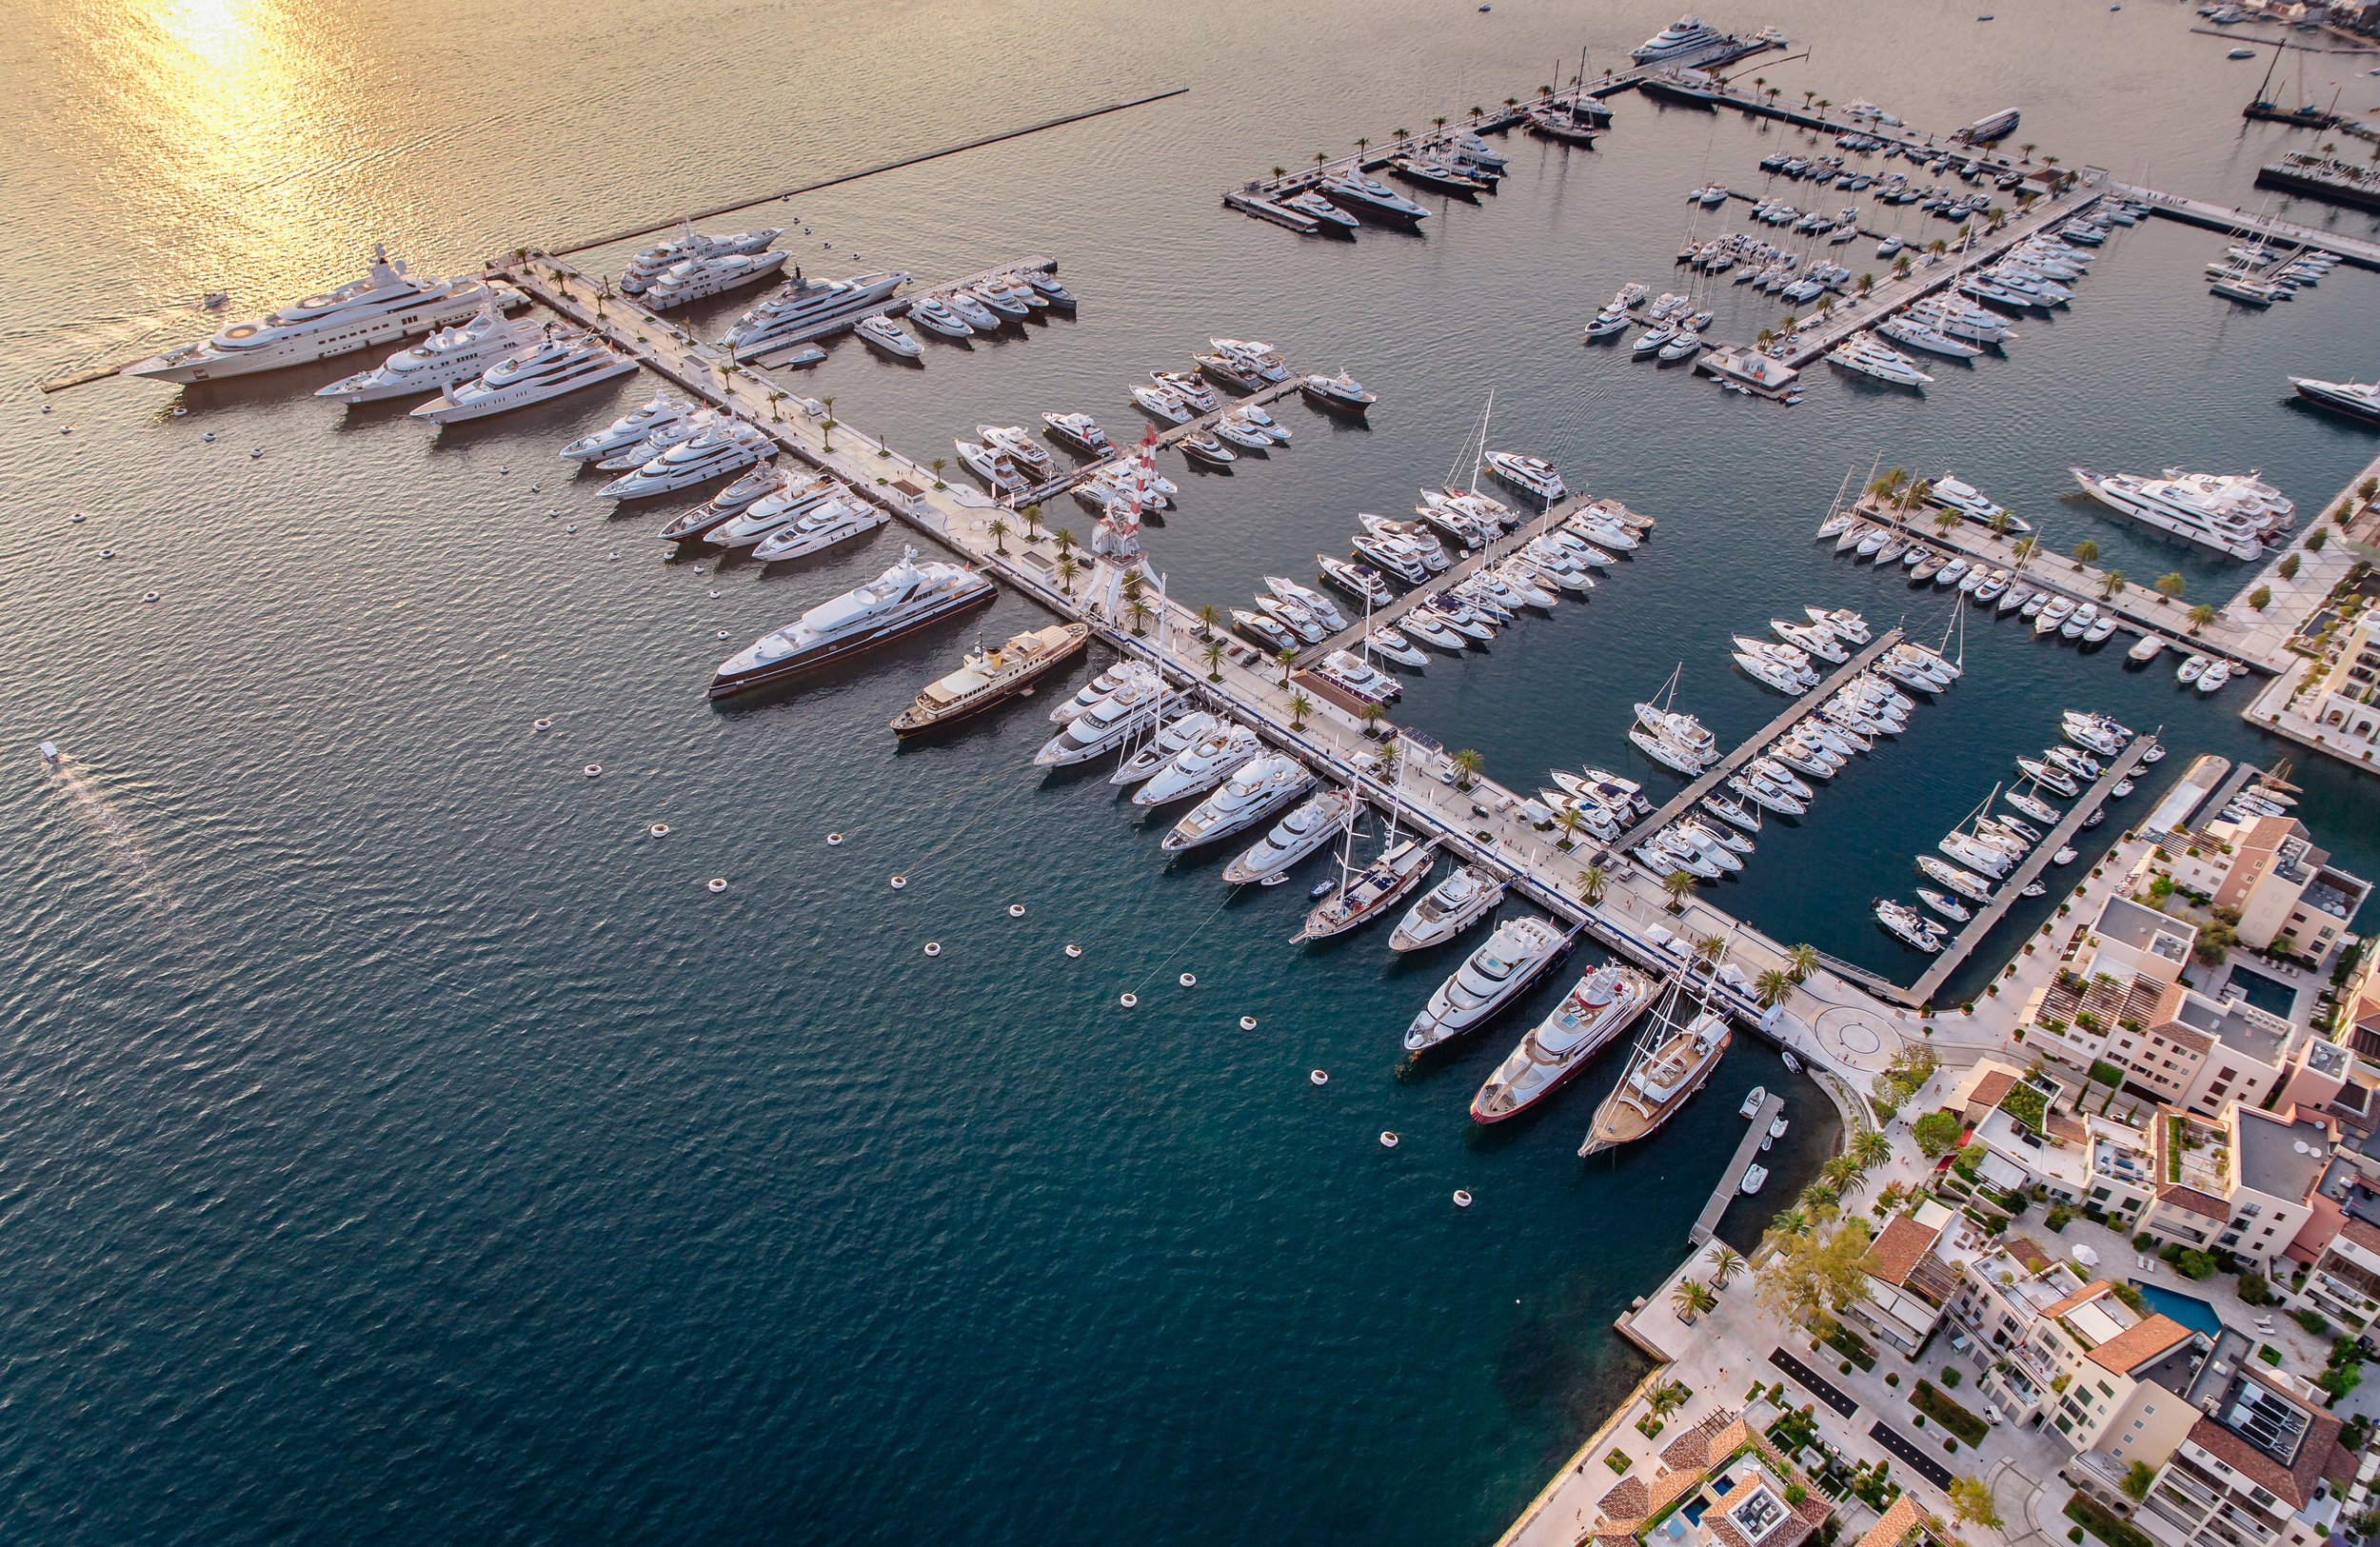 Location:  Tivat, Montenegro  Coordinates:  42.4324° N, 18.6937° E  Credentials:  450 berths. duty-free fuel, wine, and champagne. Multi-lingual marina team. On-site crew club.